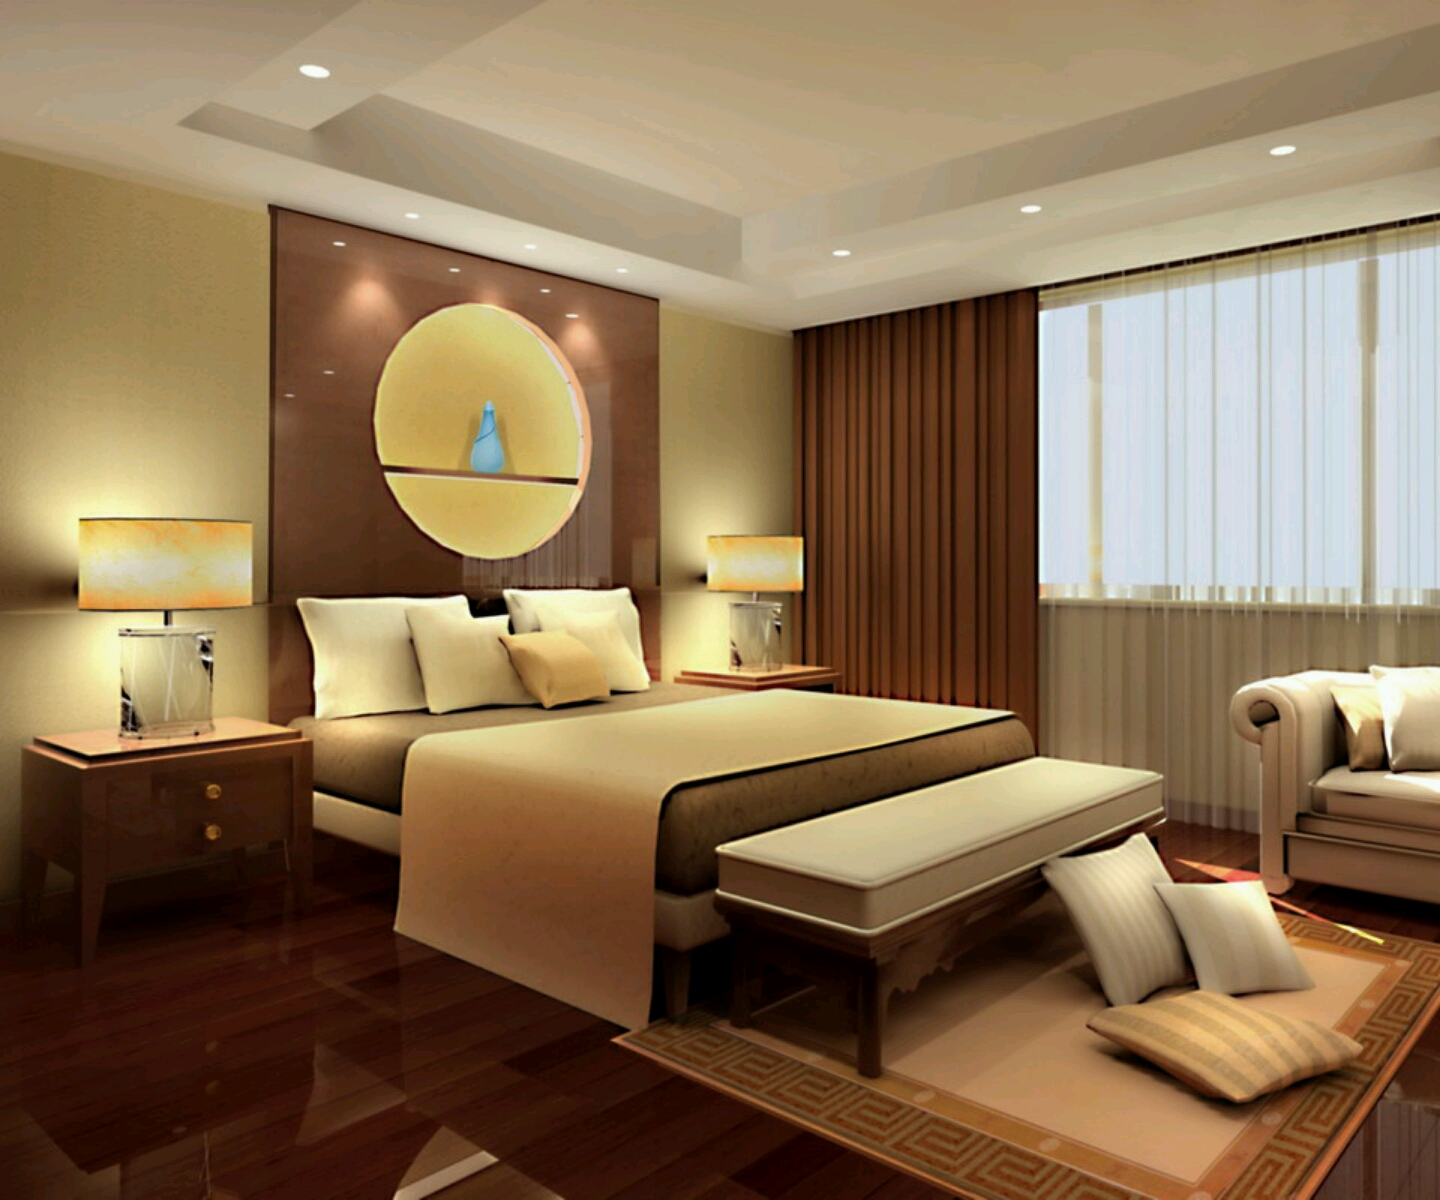 Interior Design Bedroom Ideas New Home Designs Latest Modern Beautiful Bedrooms